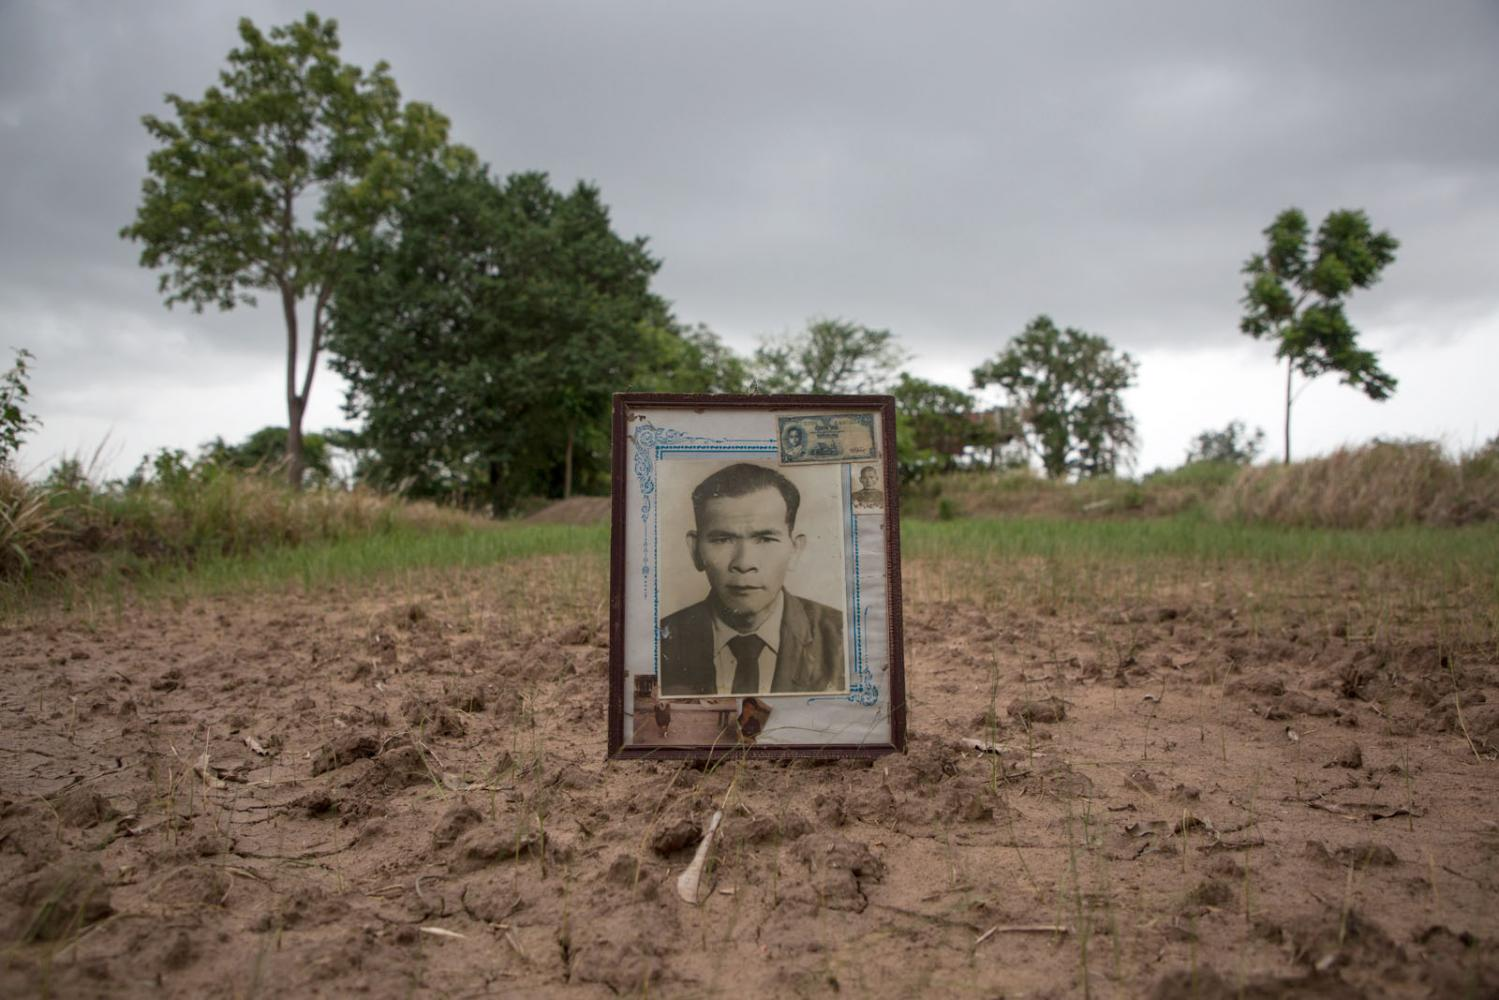 Rod Thani, Chairperson of Northeastern Peasant Federation and Vice Chairperson of National Peasant Federation of Thailand was shot dead on 5July 1979 in Nong Bua Daeng District, Chaiyaphum Province. One of the founders of the Federation, he took the lead in the campaigning against the construction of the nearby Lam Chee Bon Dam.